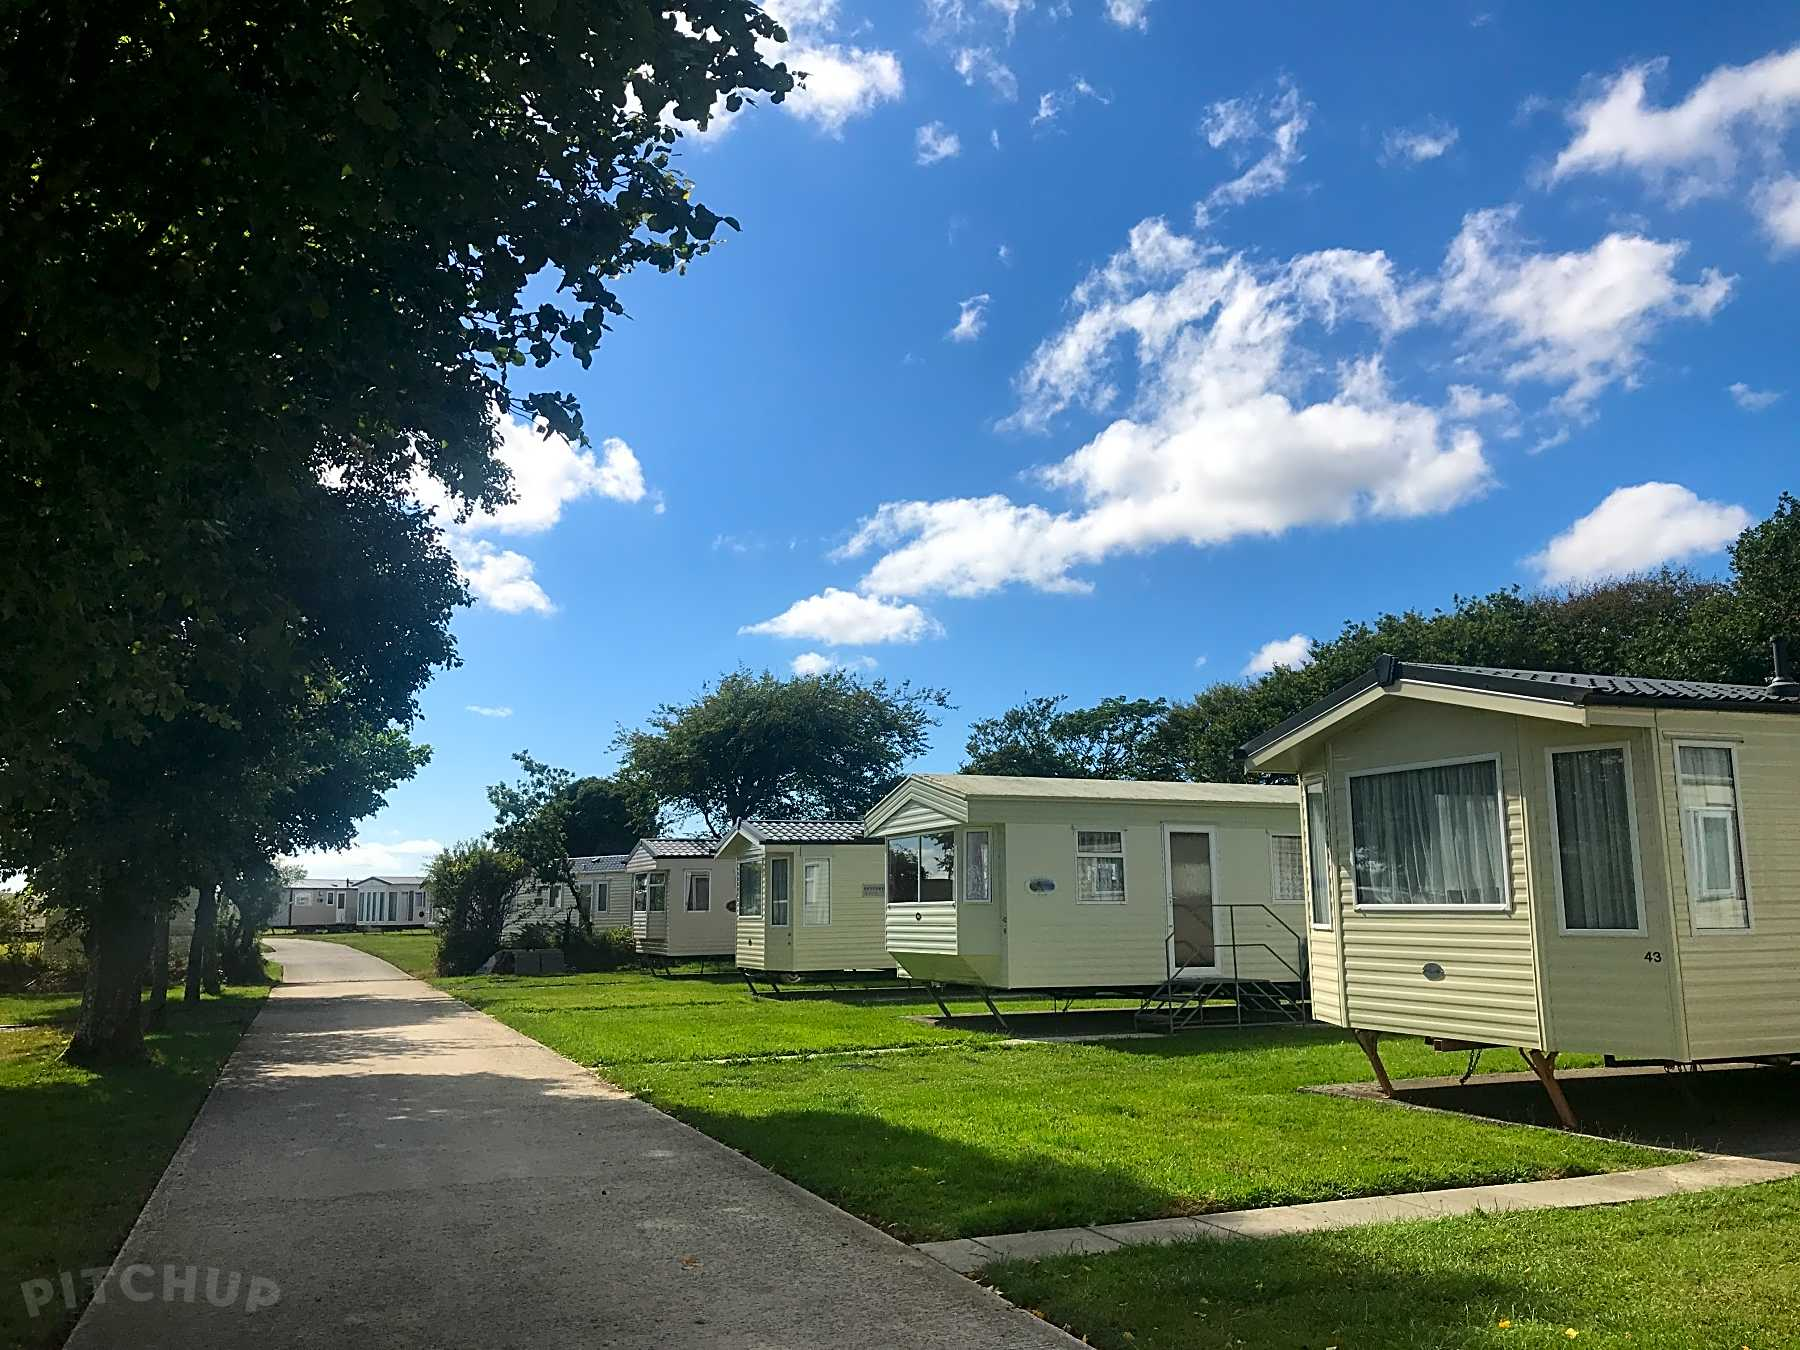 Find Static Caravan Sites and Caravan Holiday Parks in Devon